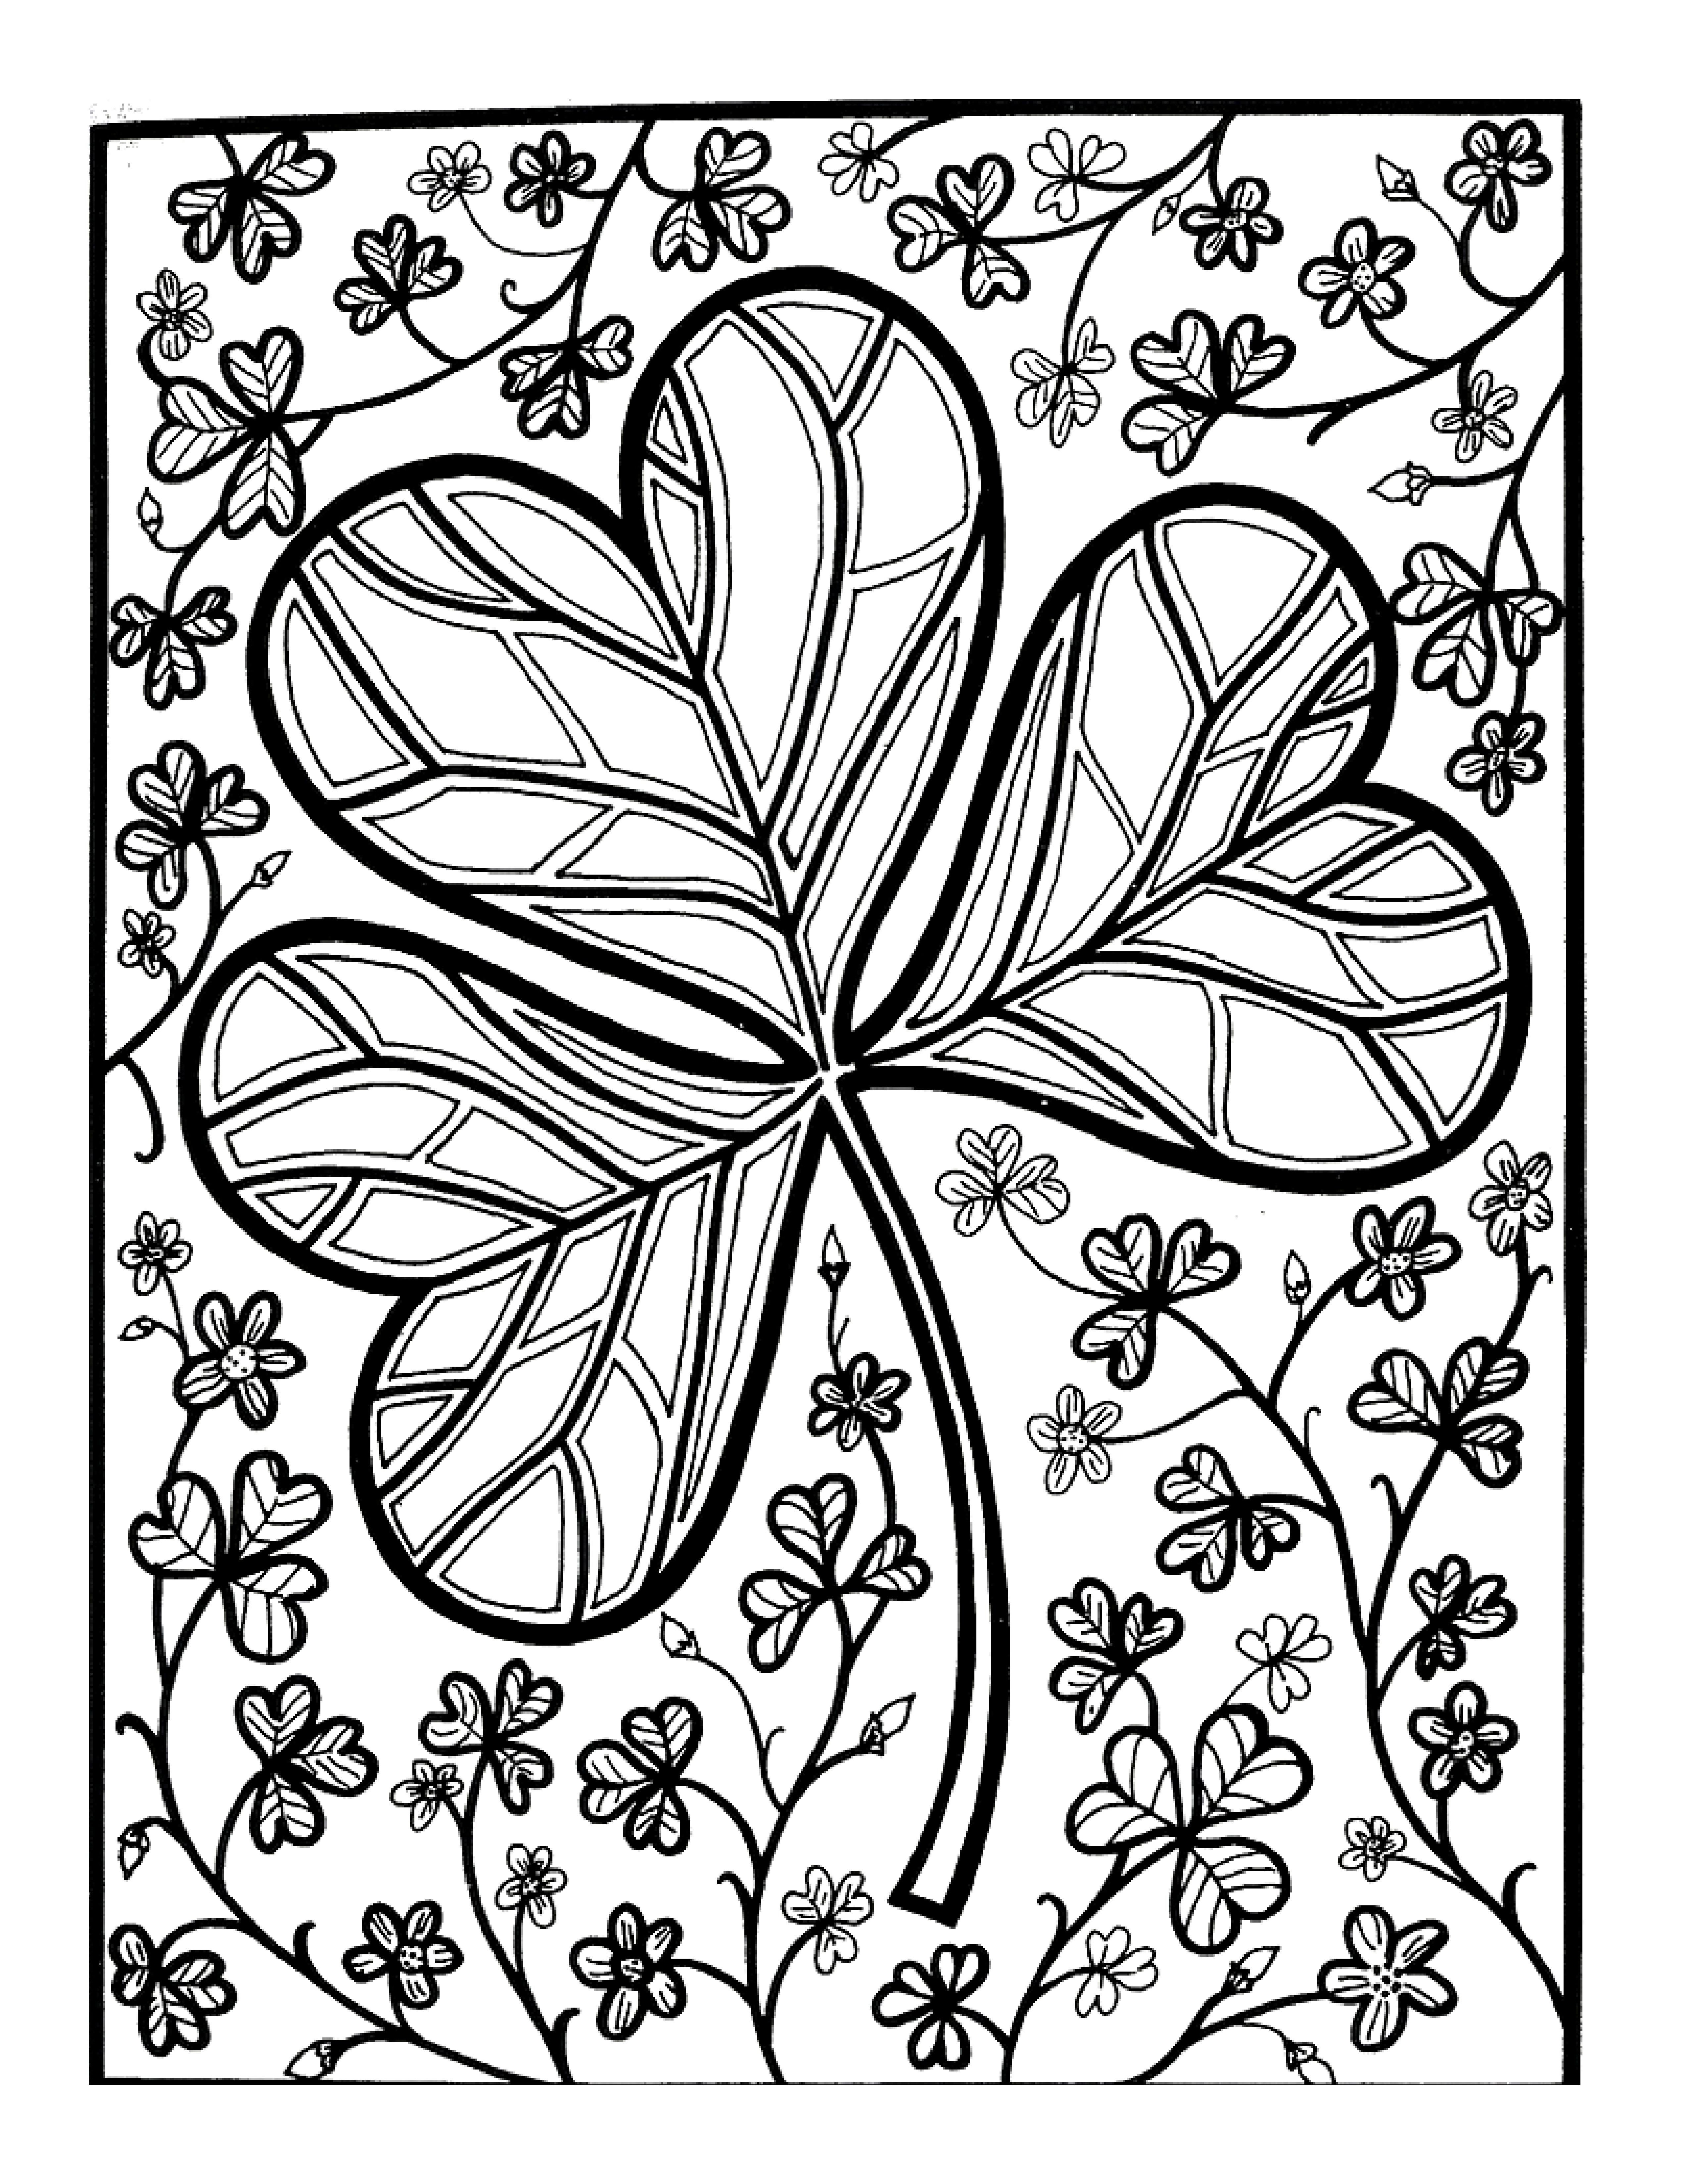 Pin By William Mike Groeneveld On Let S Doodle Coloring Pages